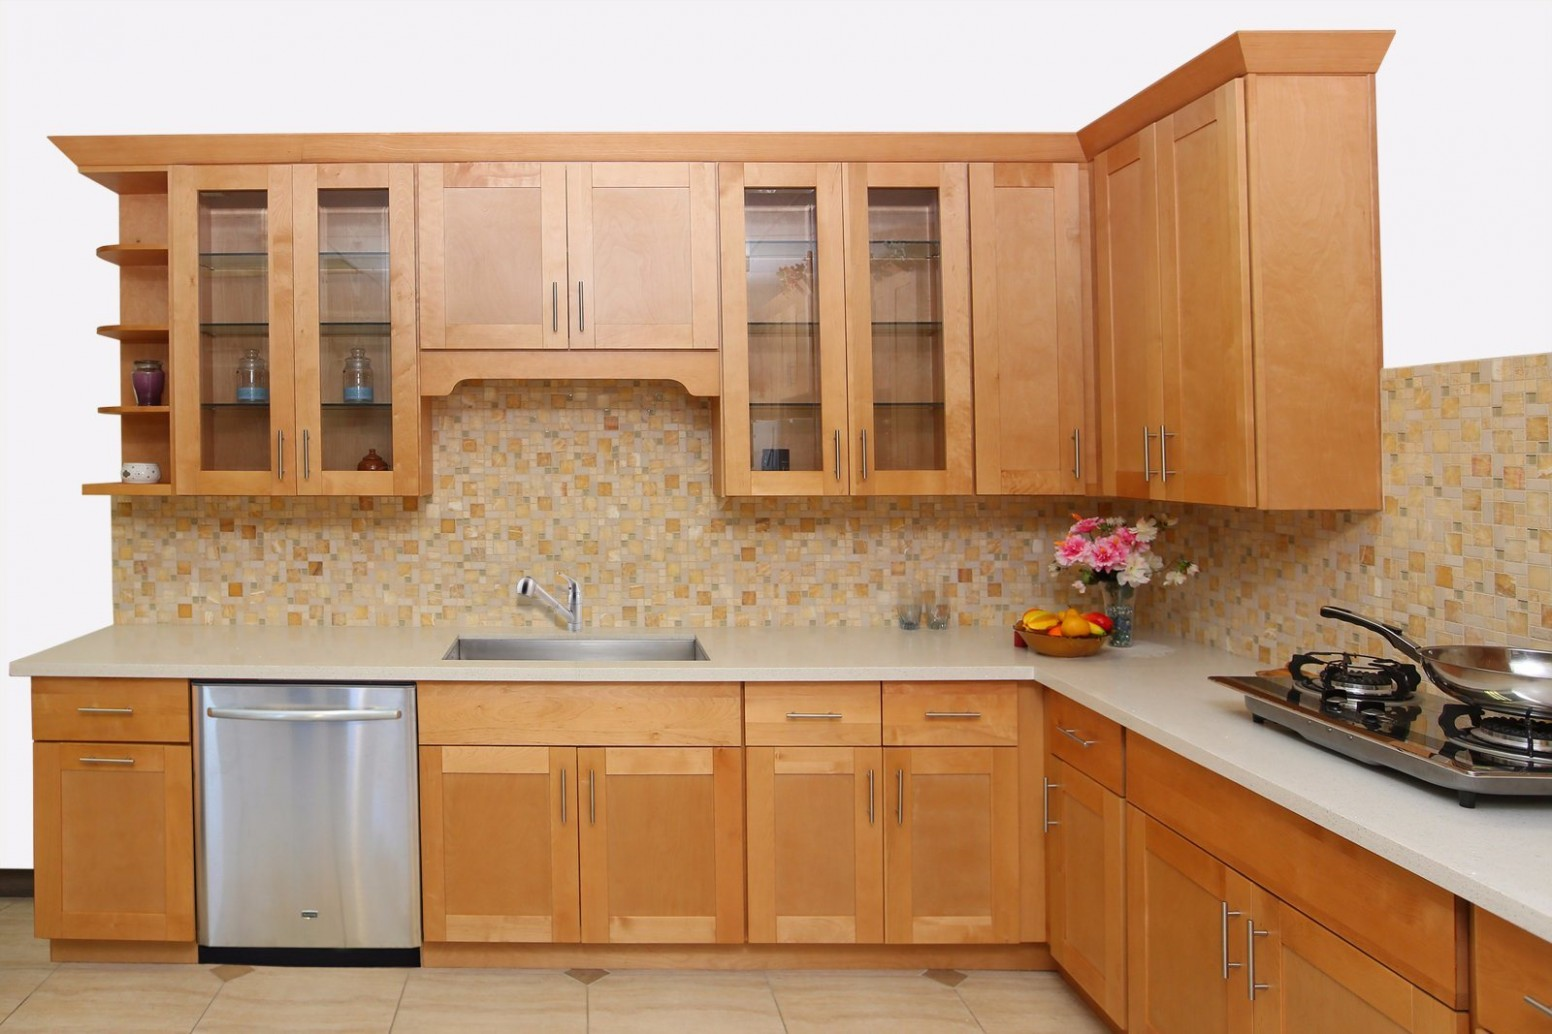 [Hot Item] Red Oak Solid Wood Shaker Kitchen Cupboard Furniture From China  Factory - Red Shaker Kitchen Cabinets